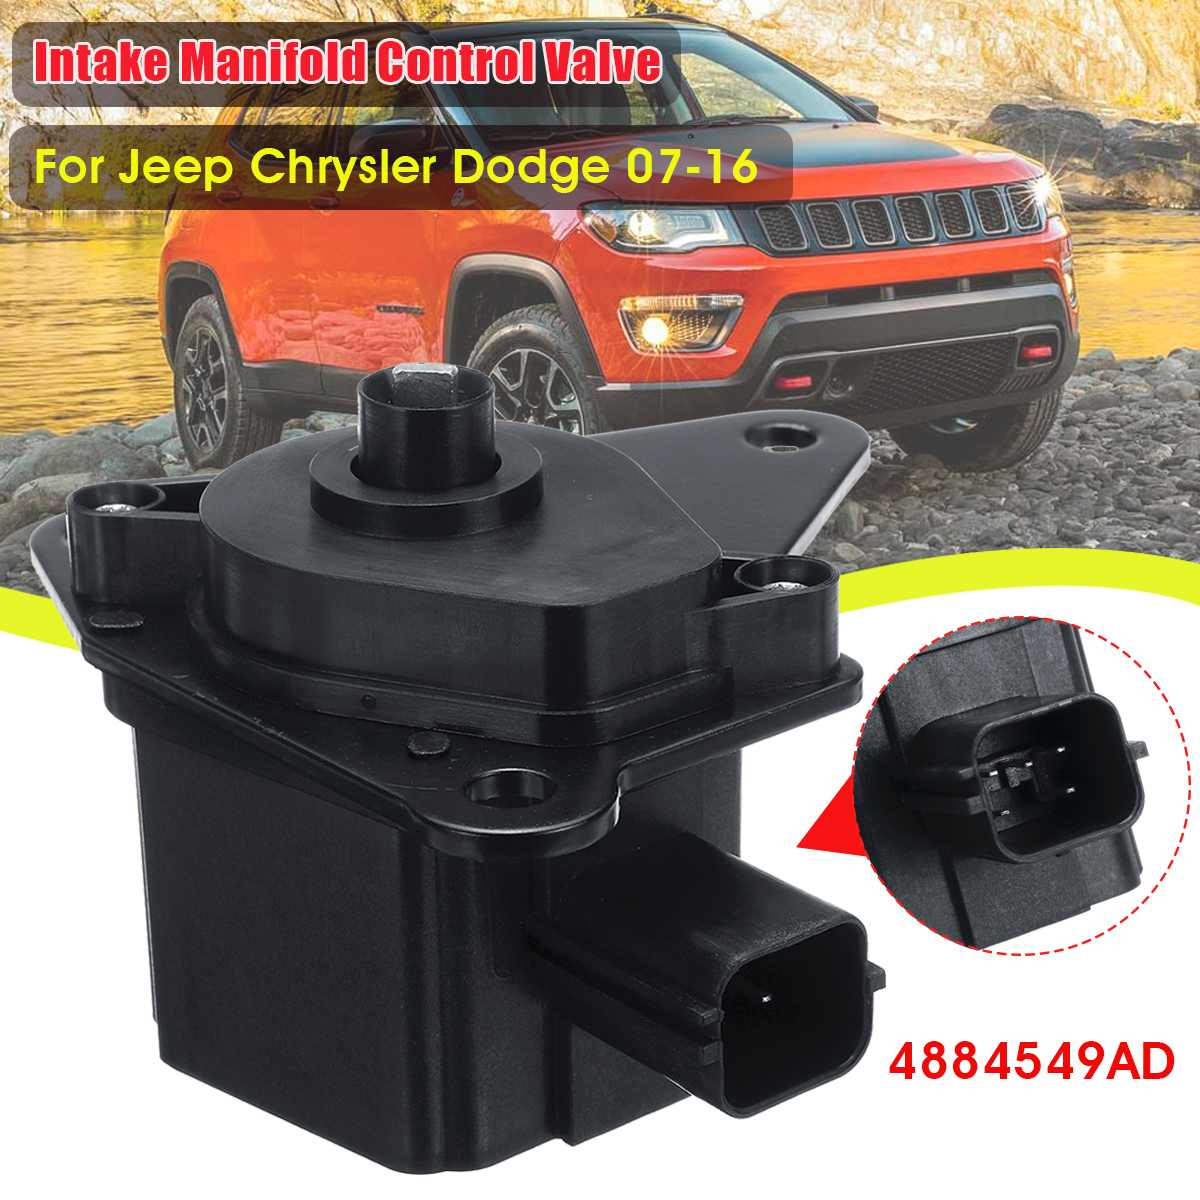 Intake Manifold Runner Control Valve For Chrysler Dodge Jeep Compass 911-902